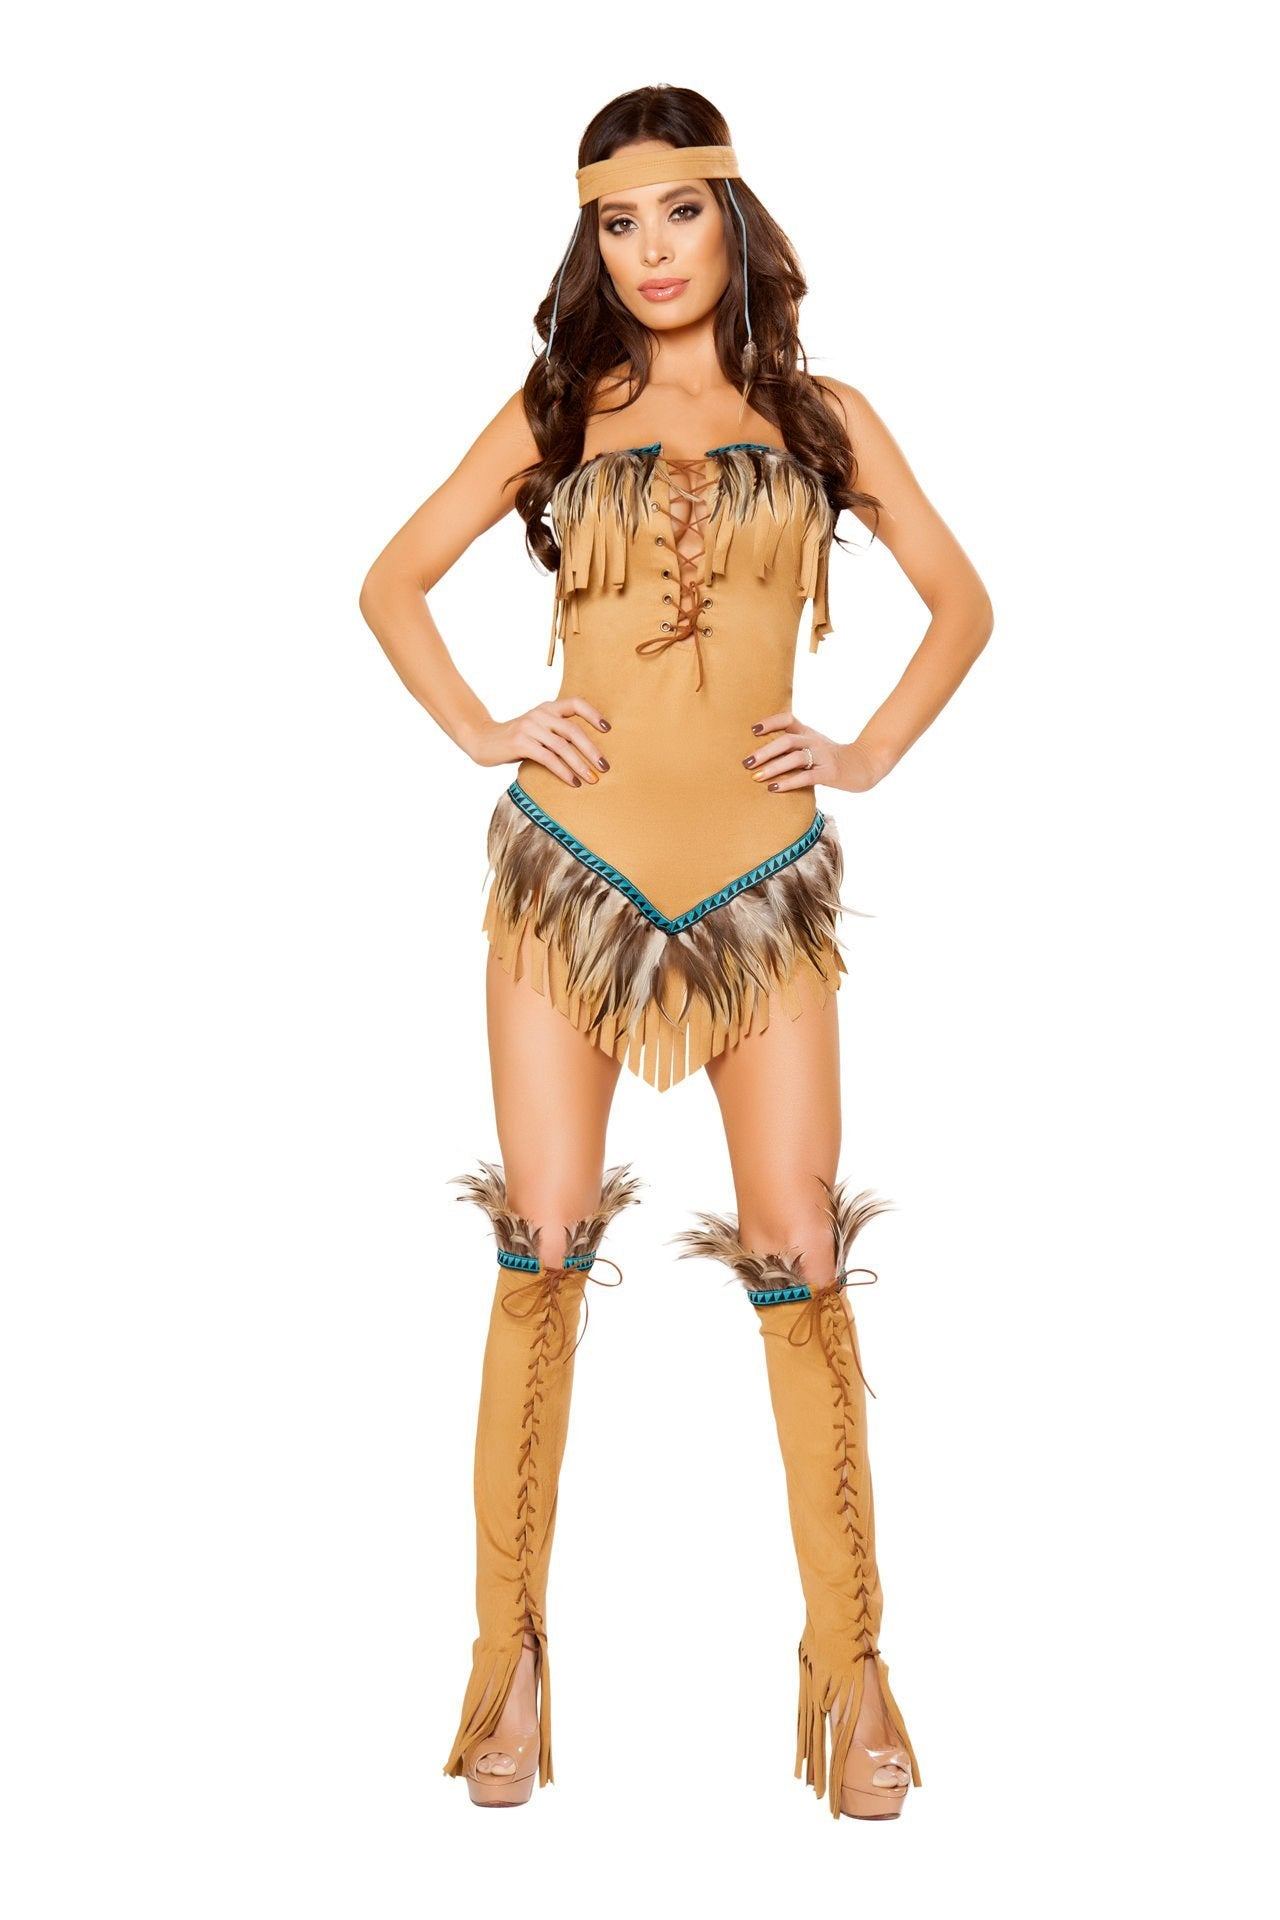 10102 - 2pc Native American Seductress